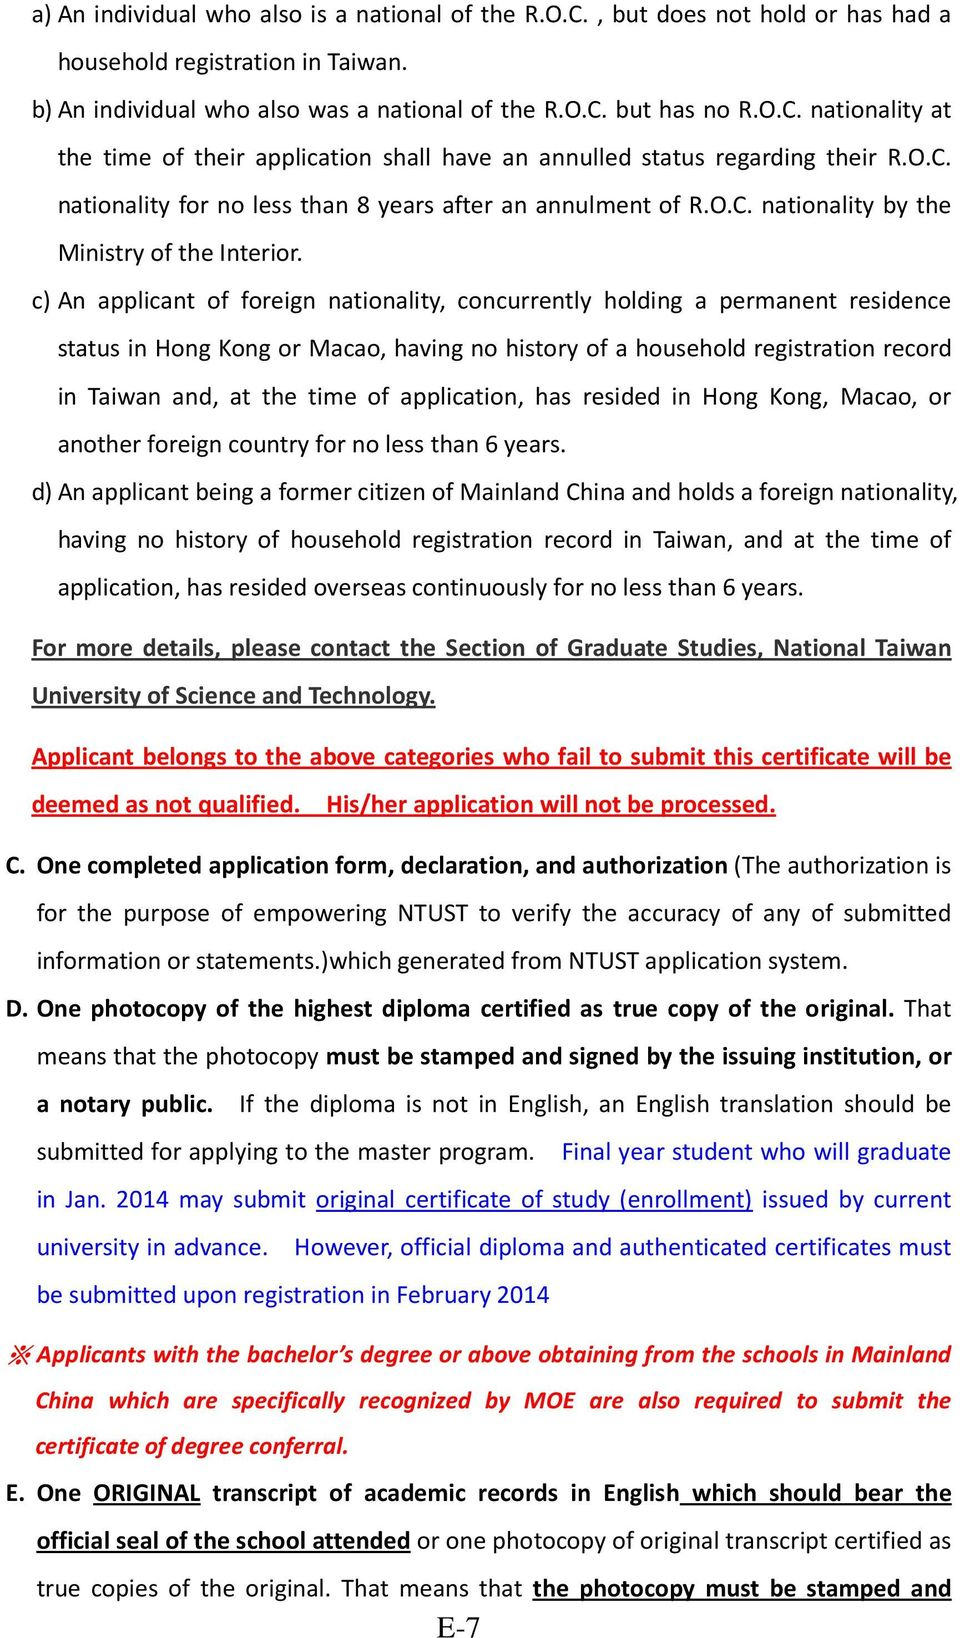 c) An applicant of foreign nationality, concurrently holding a permanent residence status in Hong Kong or Macao, having no history of a household registration record in Taiwan and, at the time of